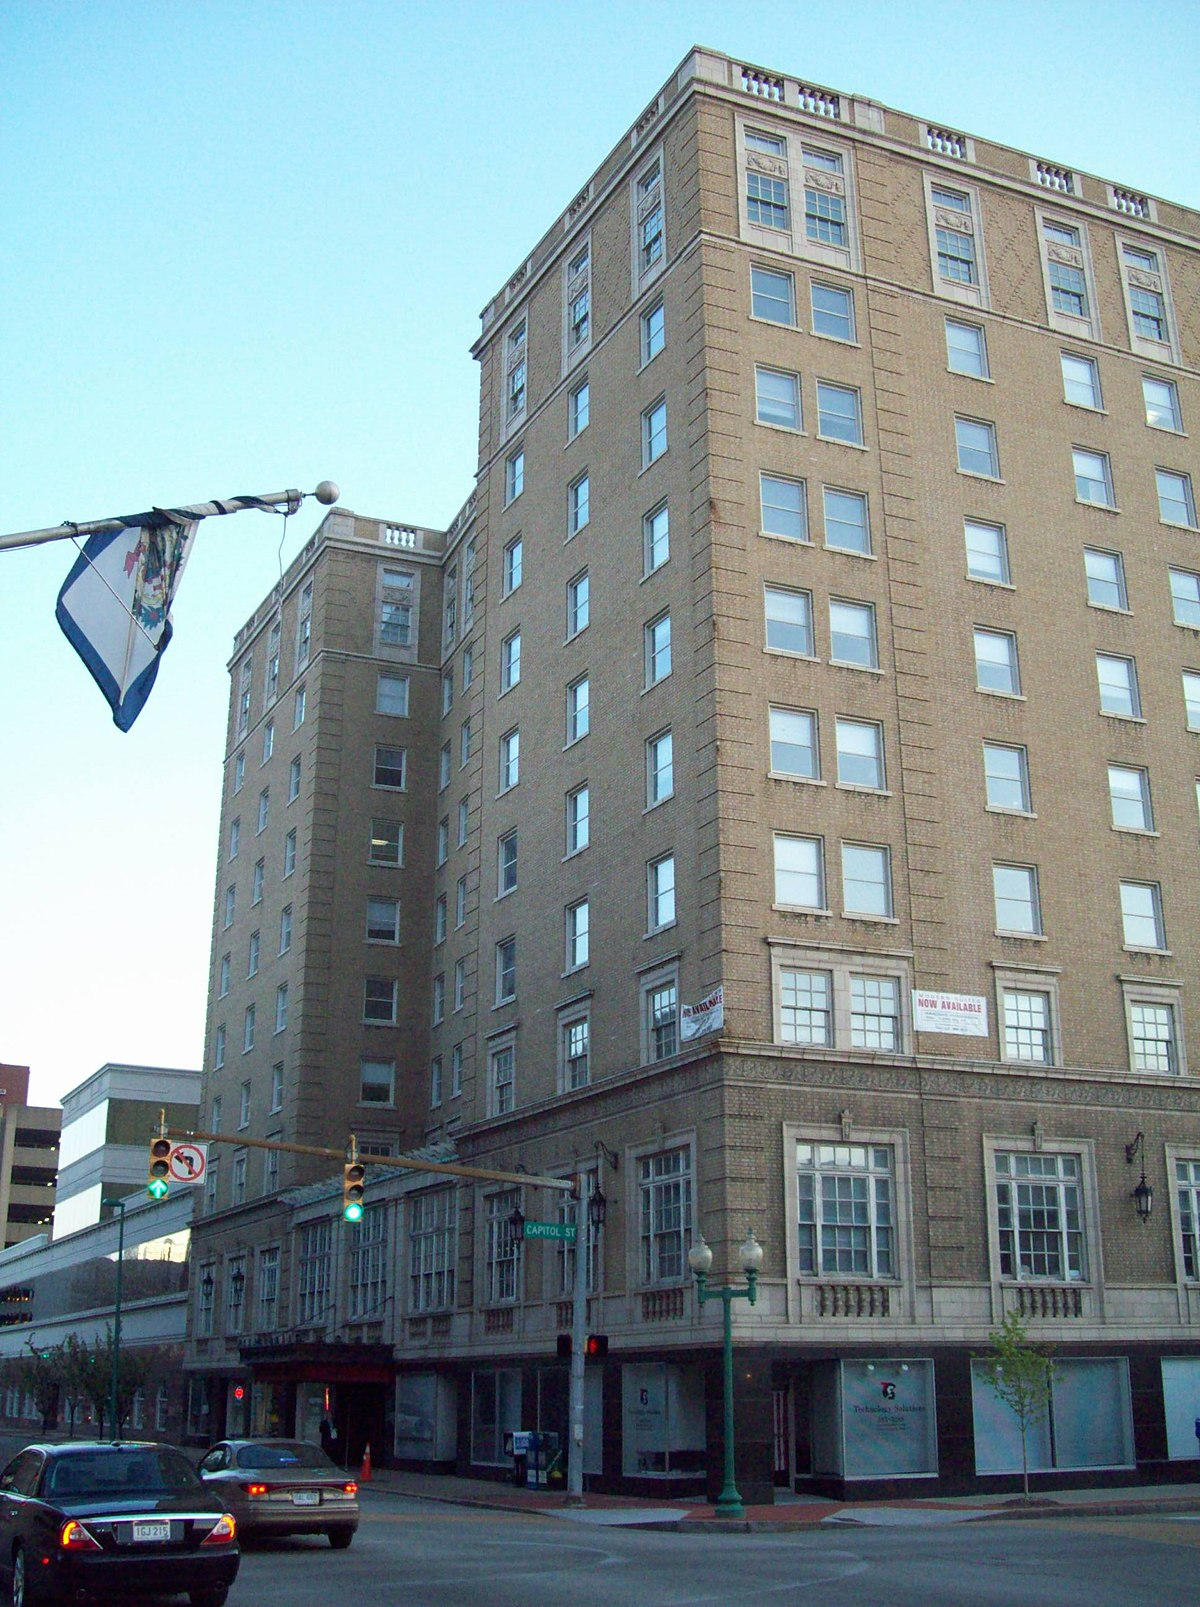 Daniel Boone Hotel Charleston West Virginia Wikipedia